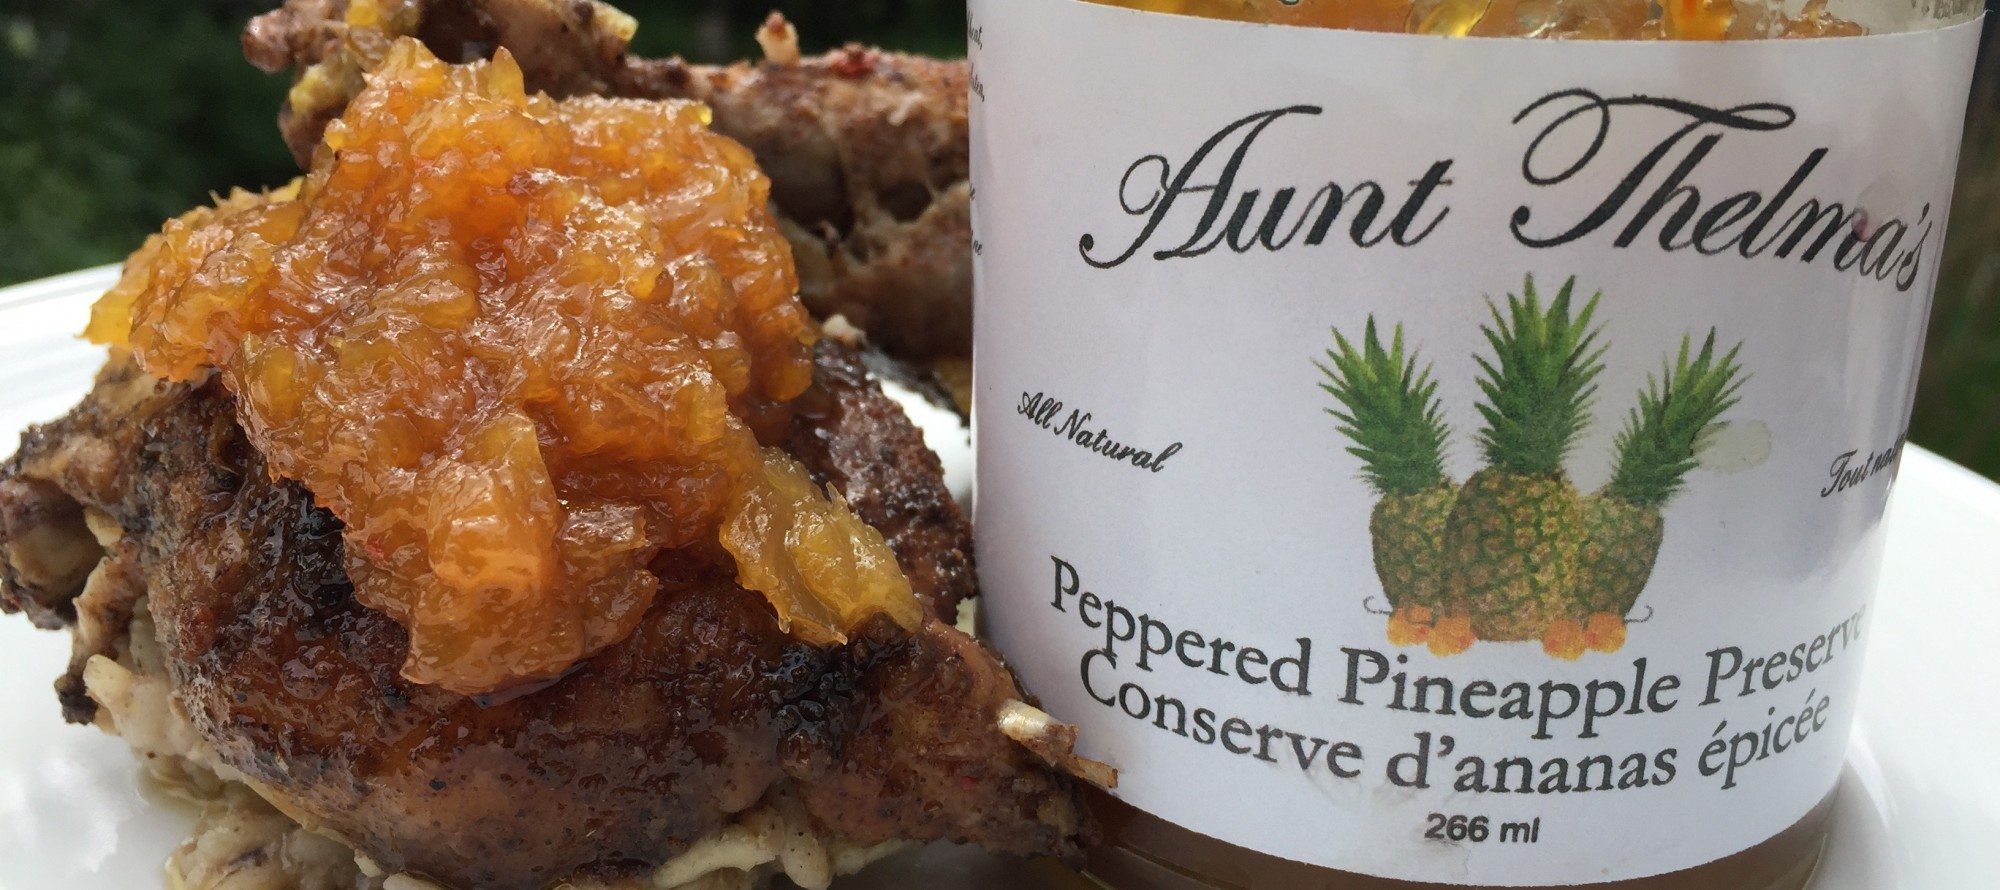 Aunt Thelma's Peppered Pineapple Preserve